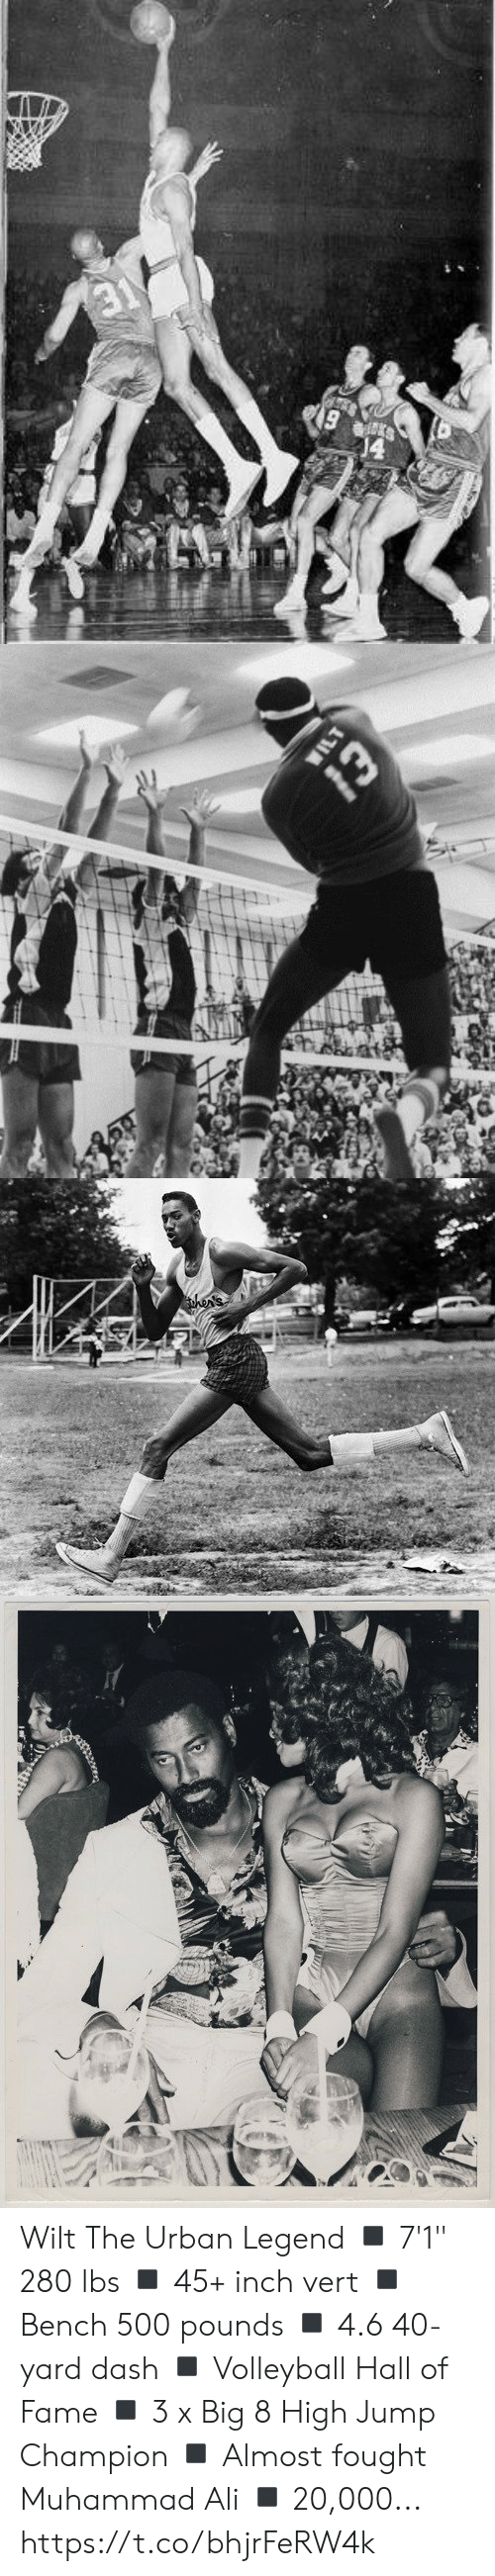 "4 6: 19   WILT  Whe   then's Wilt The Urban Legend  ◾️ 7'1"" 280 lbs ◾️ 45+ inch vert ◾️ Bench 500 pounds ◾️ 4.6 40-yard dash ◾️ Volleyball Hall of Fame ◾️ 3 x Big 8 High Jump Champion ◾️ Almost fought Muhammad Ali ◾️ 20,000... https://t.co/bhjrFeRW4k"